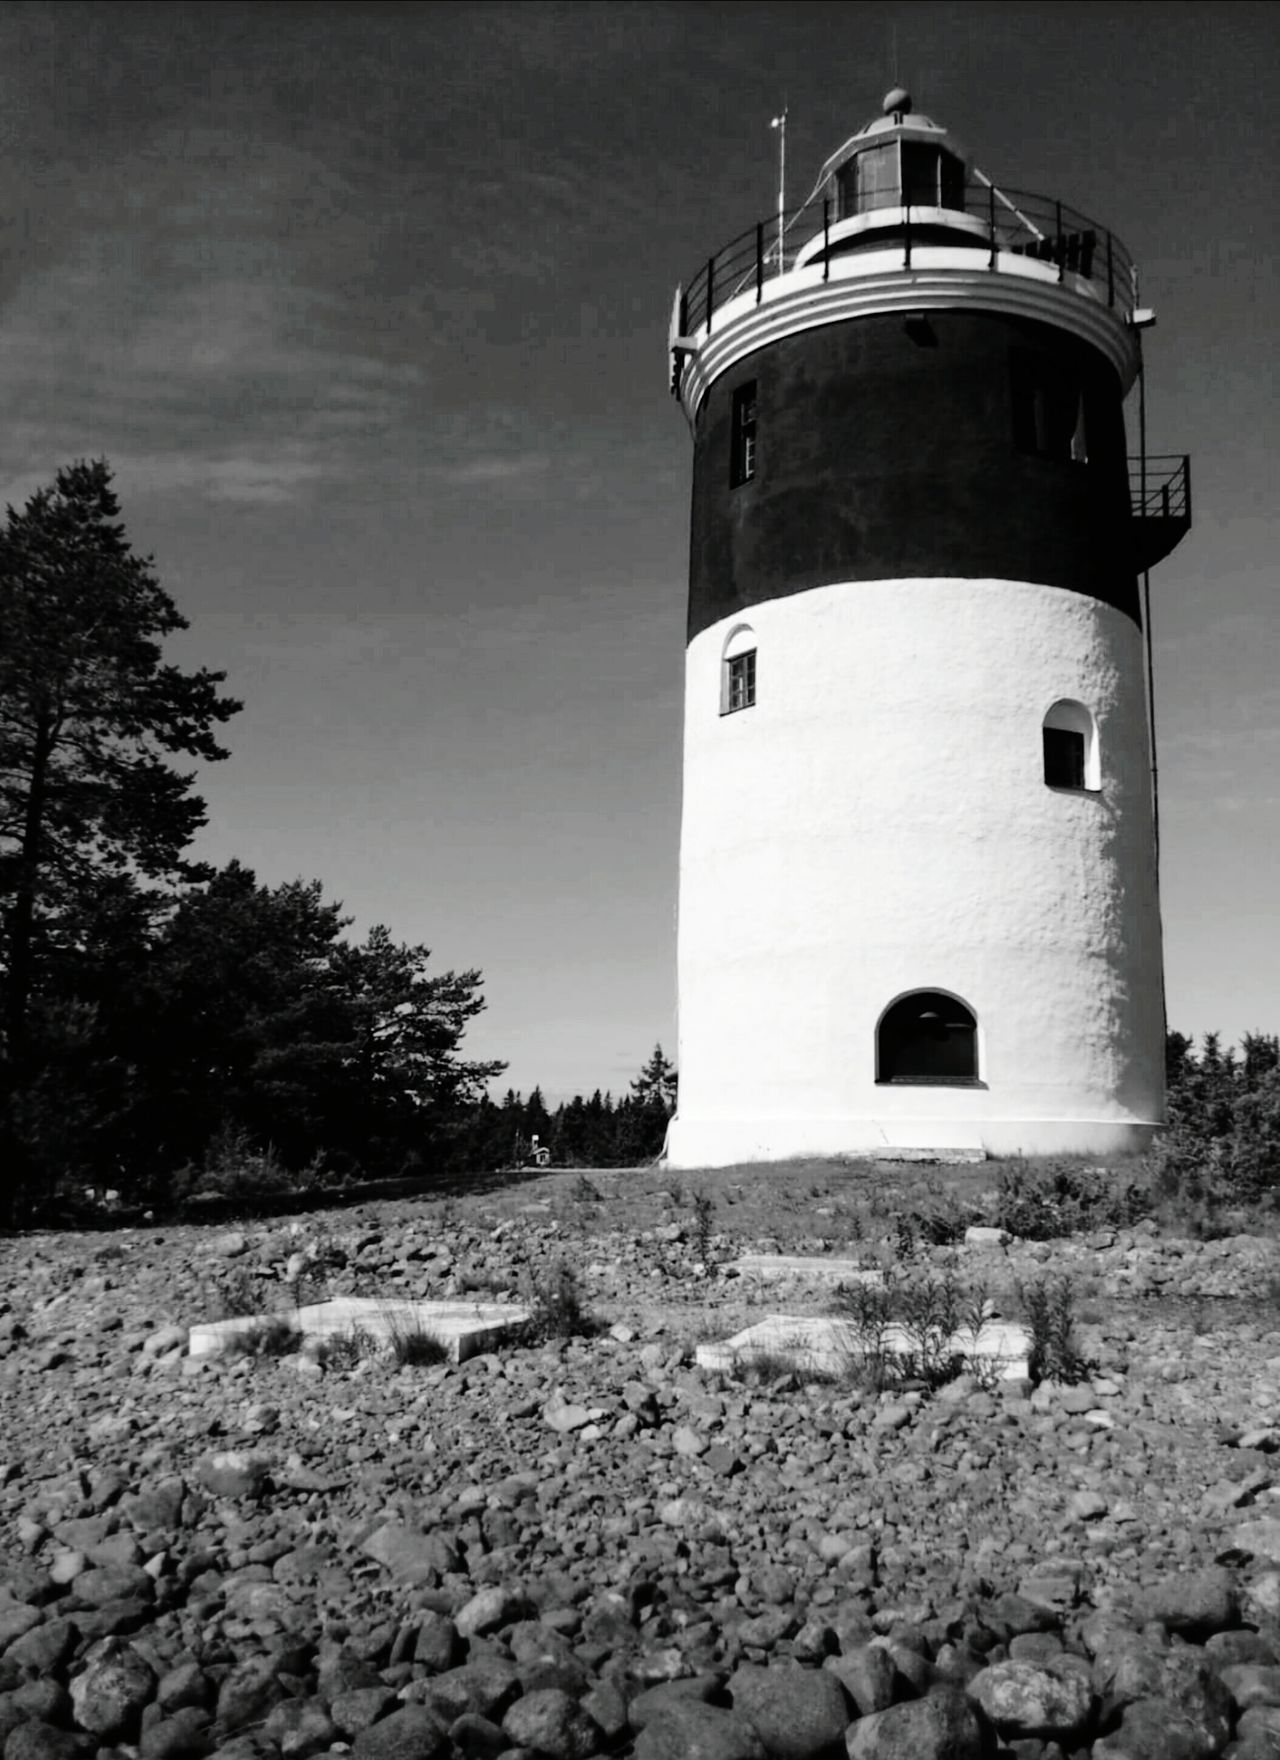 Documenting Swedich East-coast Landscapes Hälsingland Lighthouse Lighthouse_lovers Lighthousephotography Lighthouse_captures Storljungfrun Archipelago Blackandwhite Black And White Black & White Black&white Black And White Photography Bnw_collection Bnw_captures The Great Outdoors - 2016 EyeEm Awards The Architect - 2016 EyeEm Awards Beutiful Nature Landscape_Collection Landscape Landscape_photography Sweden Home Is Where The Art Is Sweden Nature Monochrome Photography